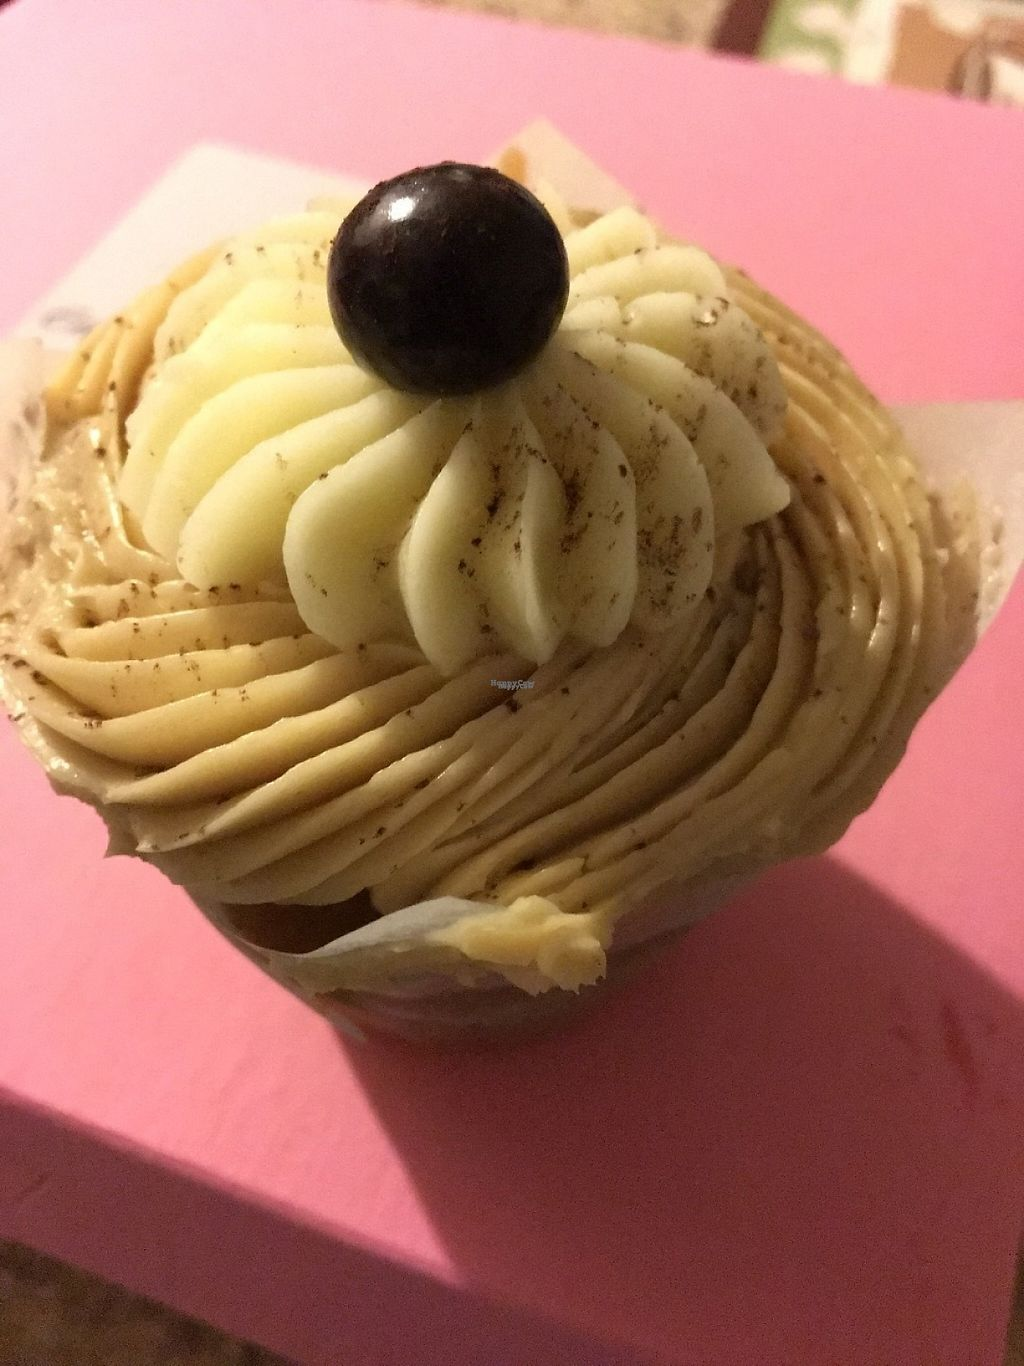 "Photo of CLOSED: Ethereal Cupcakes and Coffee Shoppe  by <a href=""/members/profile/BreannaWhite"">BreannaWhite</a> <br/>caramel <br/> November 9, 2016  - <a href='/contact/abuse/image/42046/188014'>Report</a>"